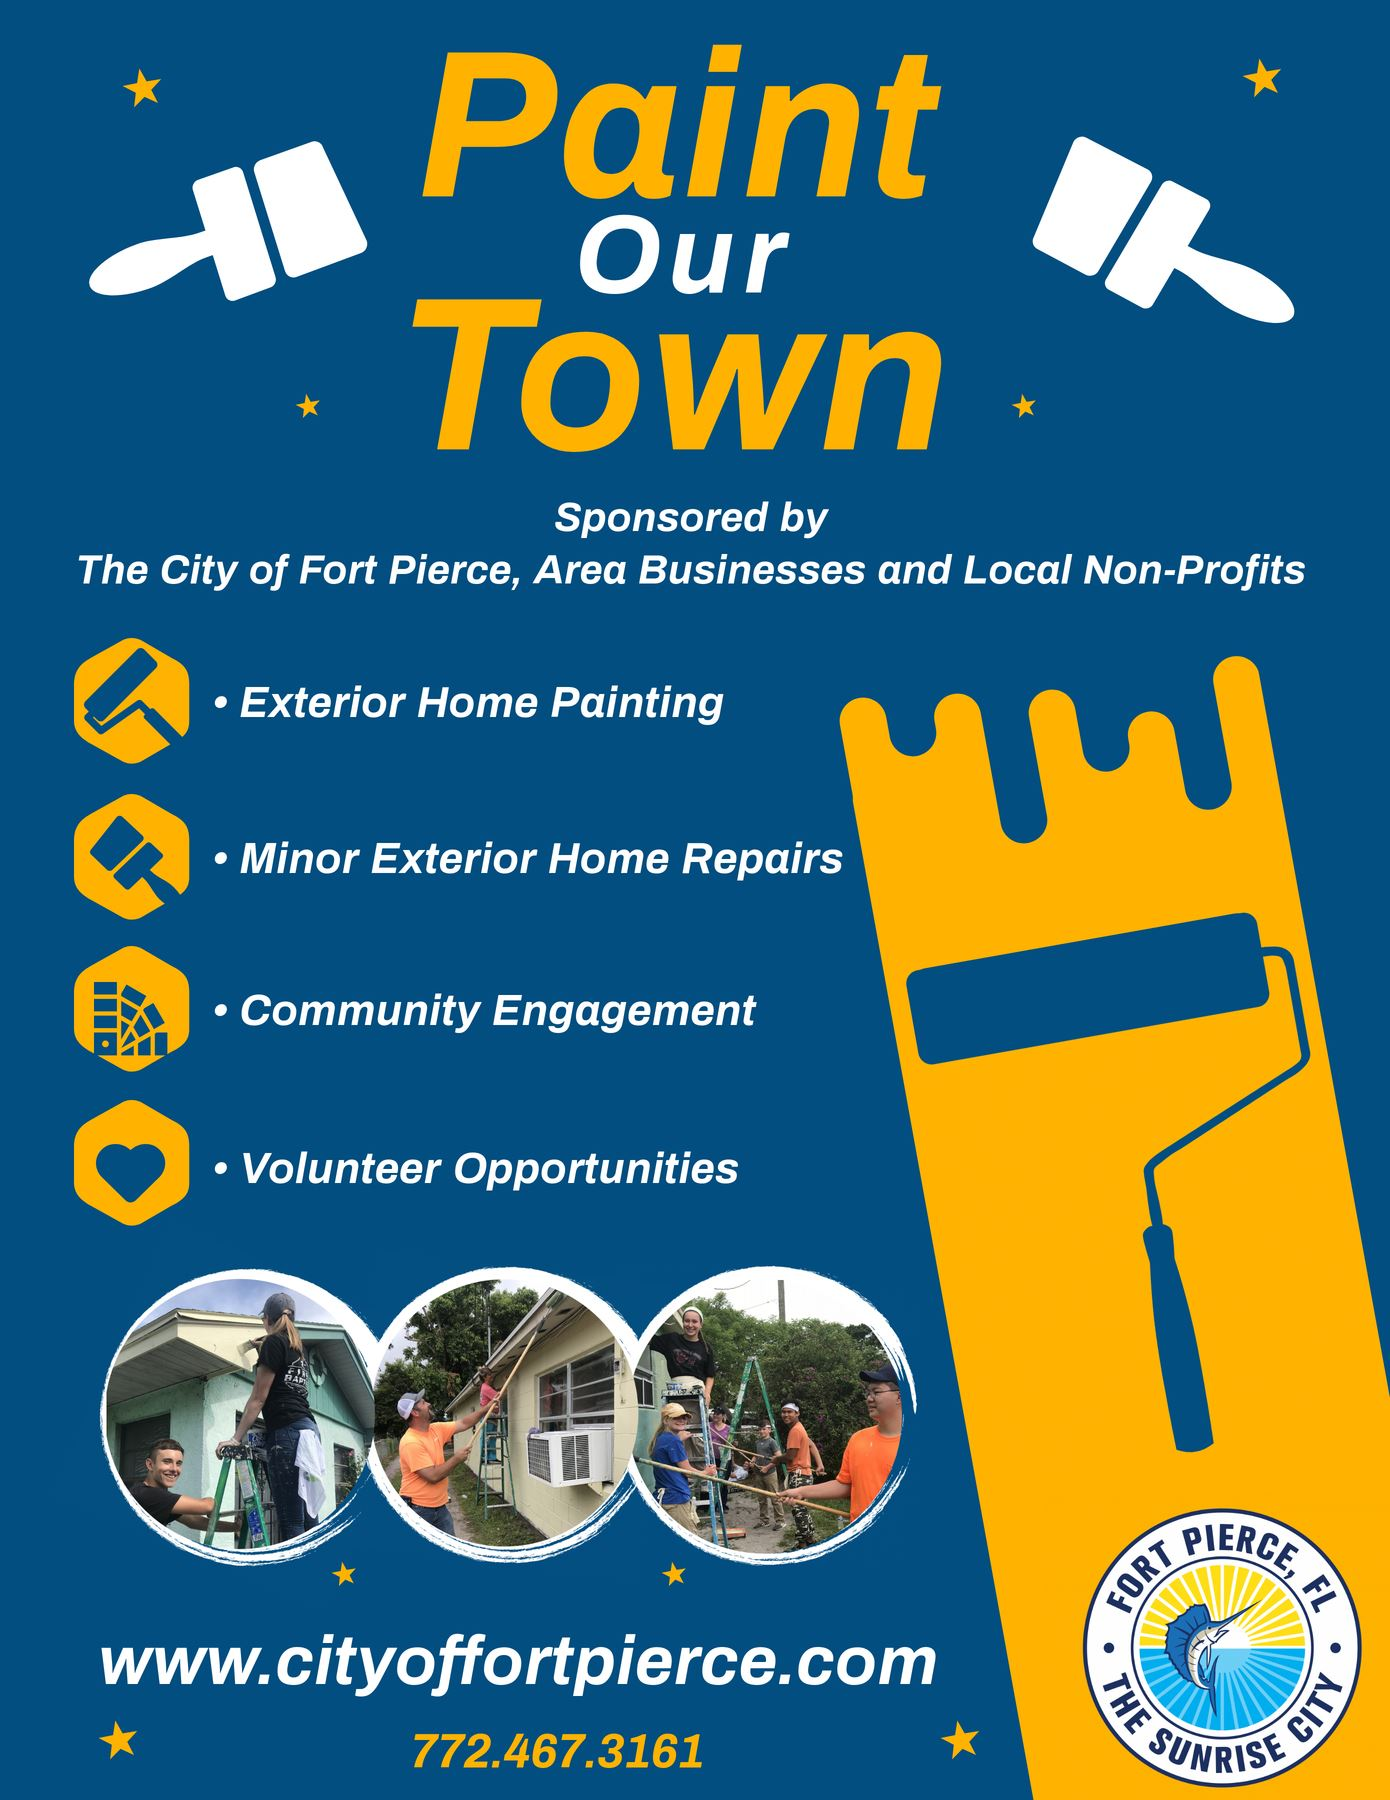 Paint Our Town Flyer 2020